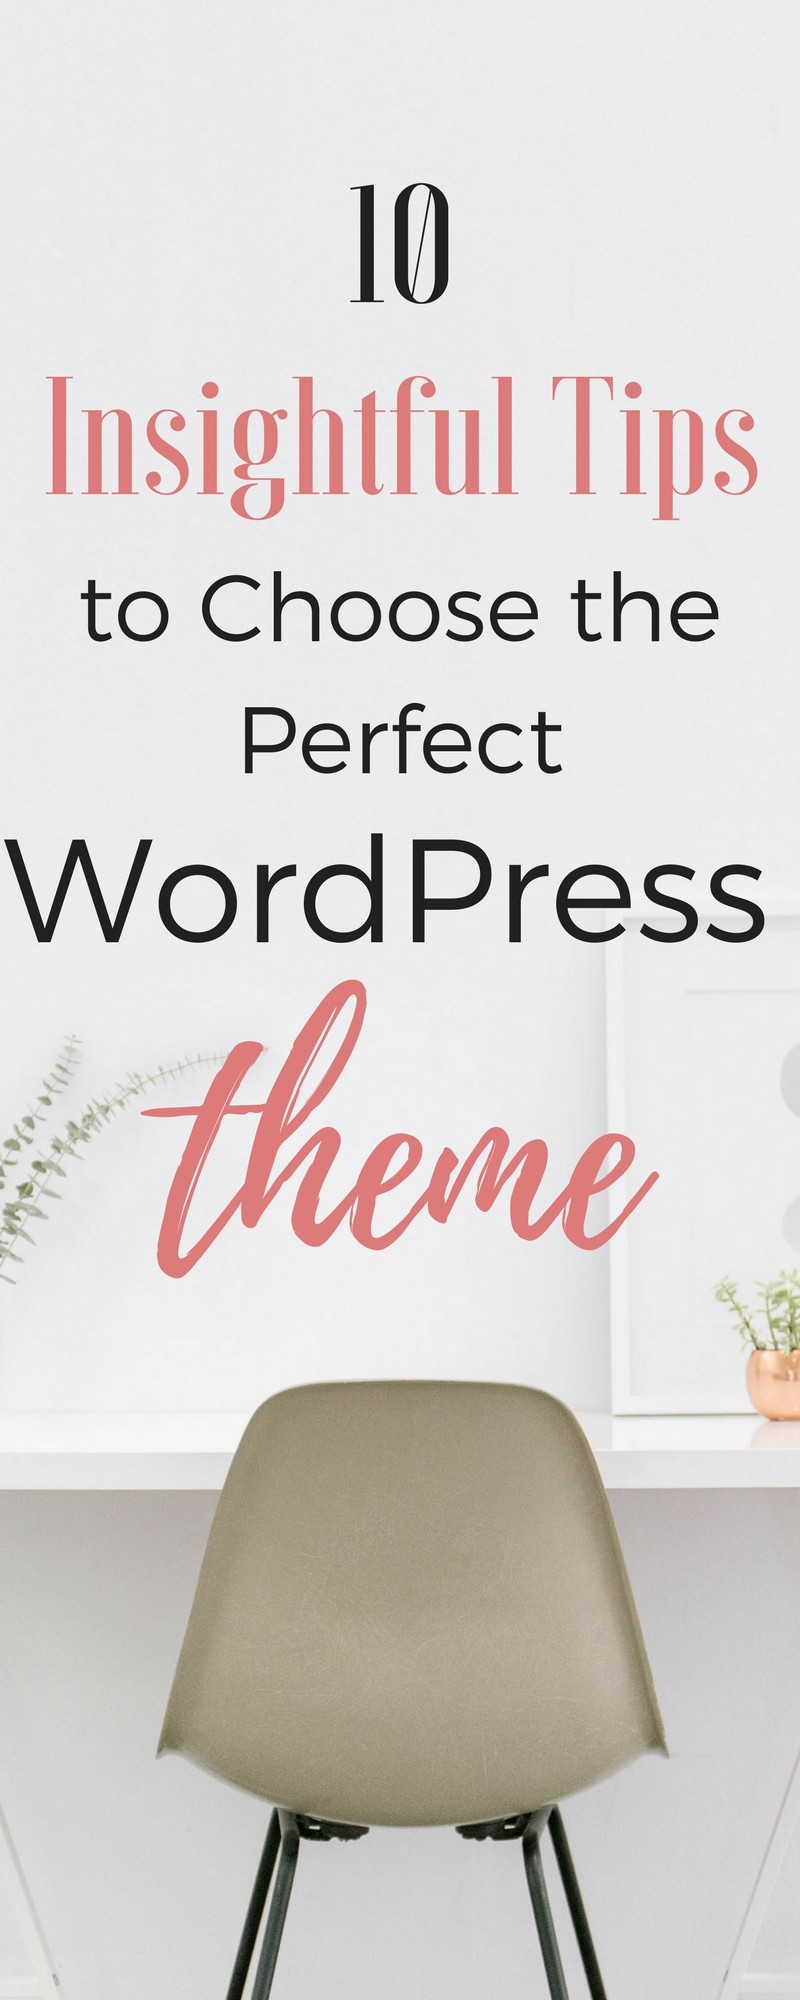 10 insightful tips to help you choose the perfect WordPress theme for you website.